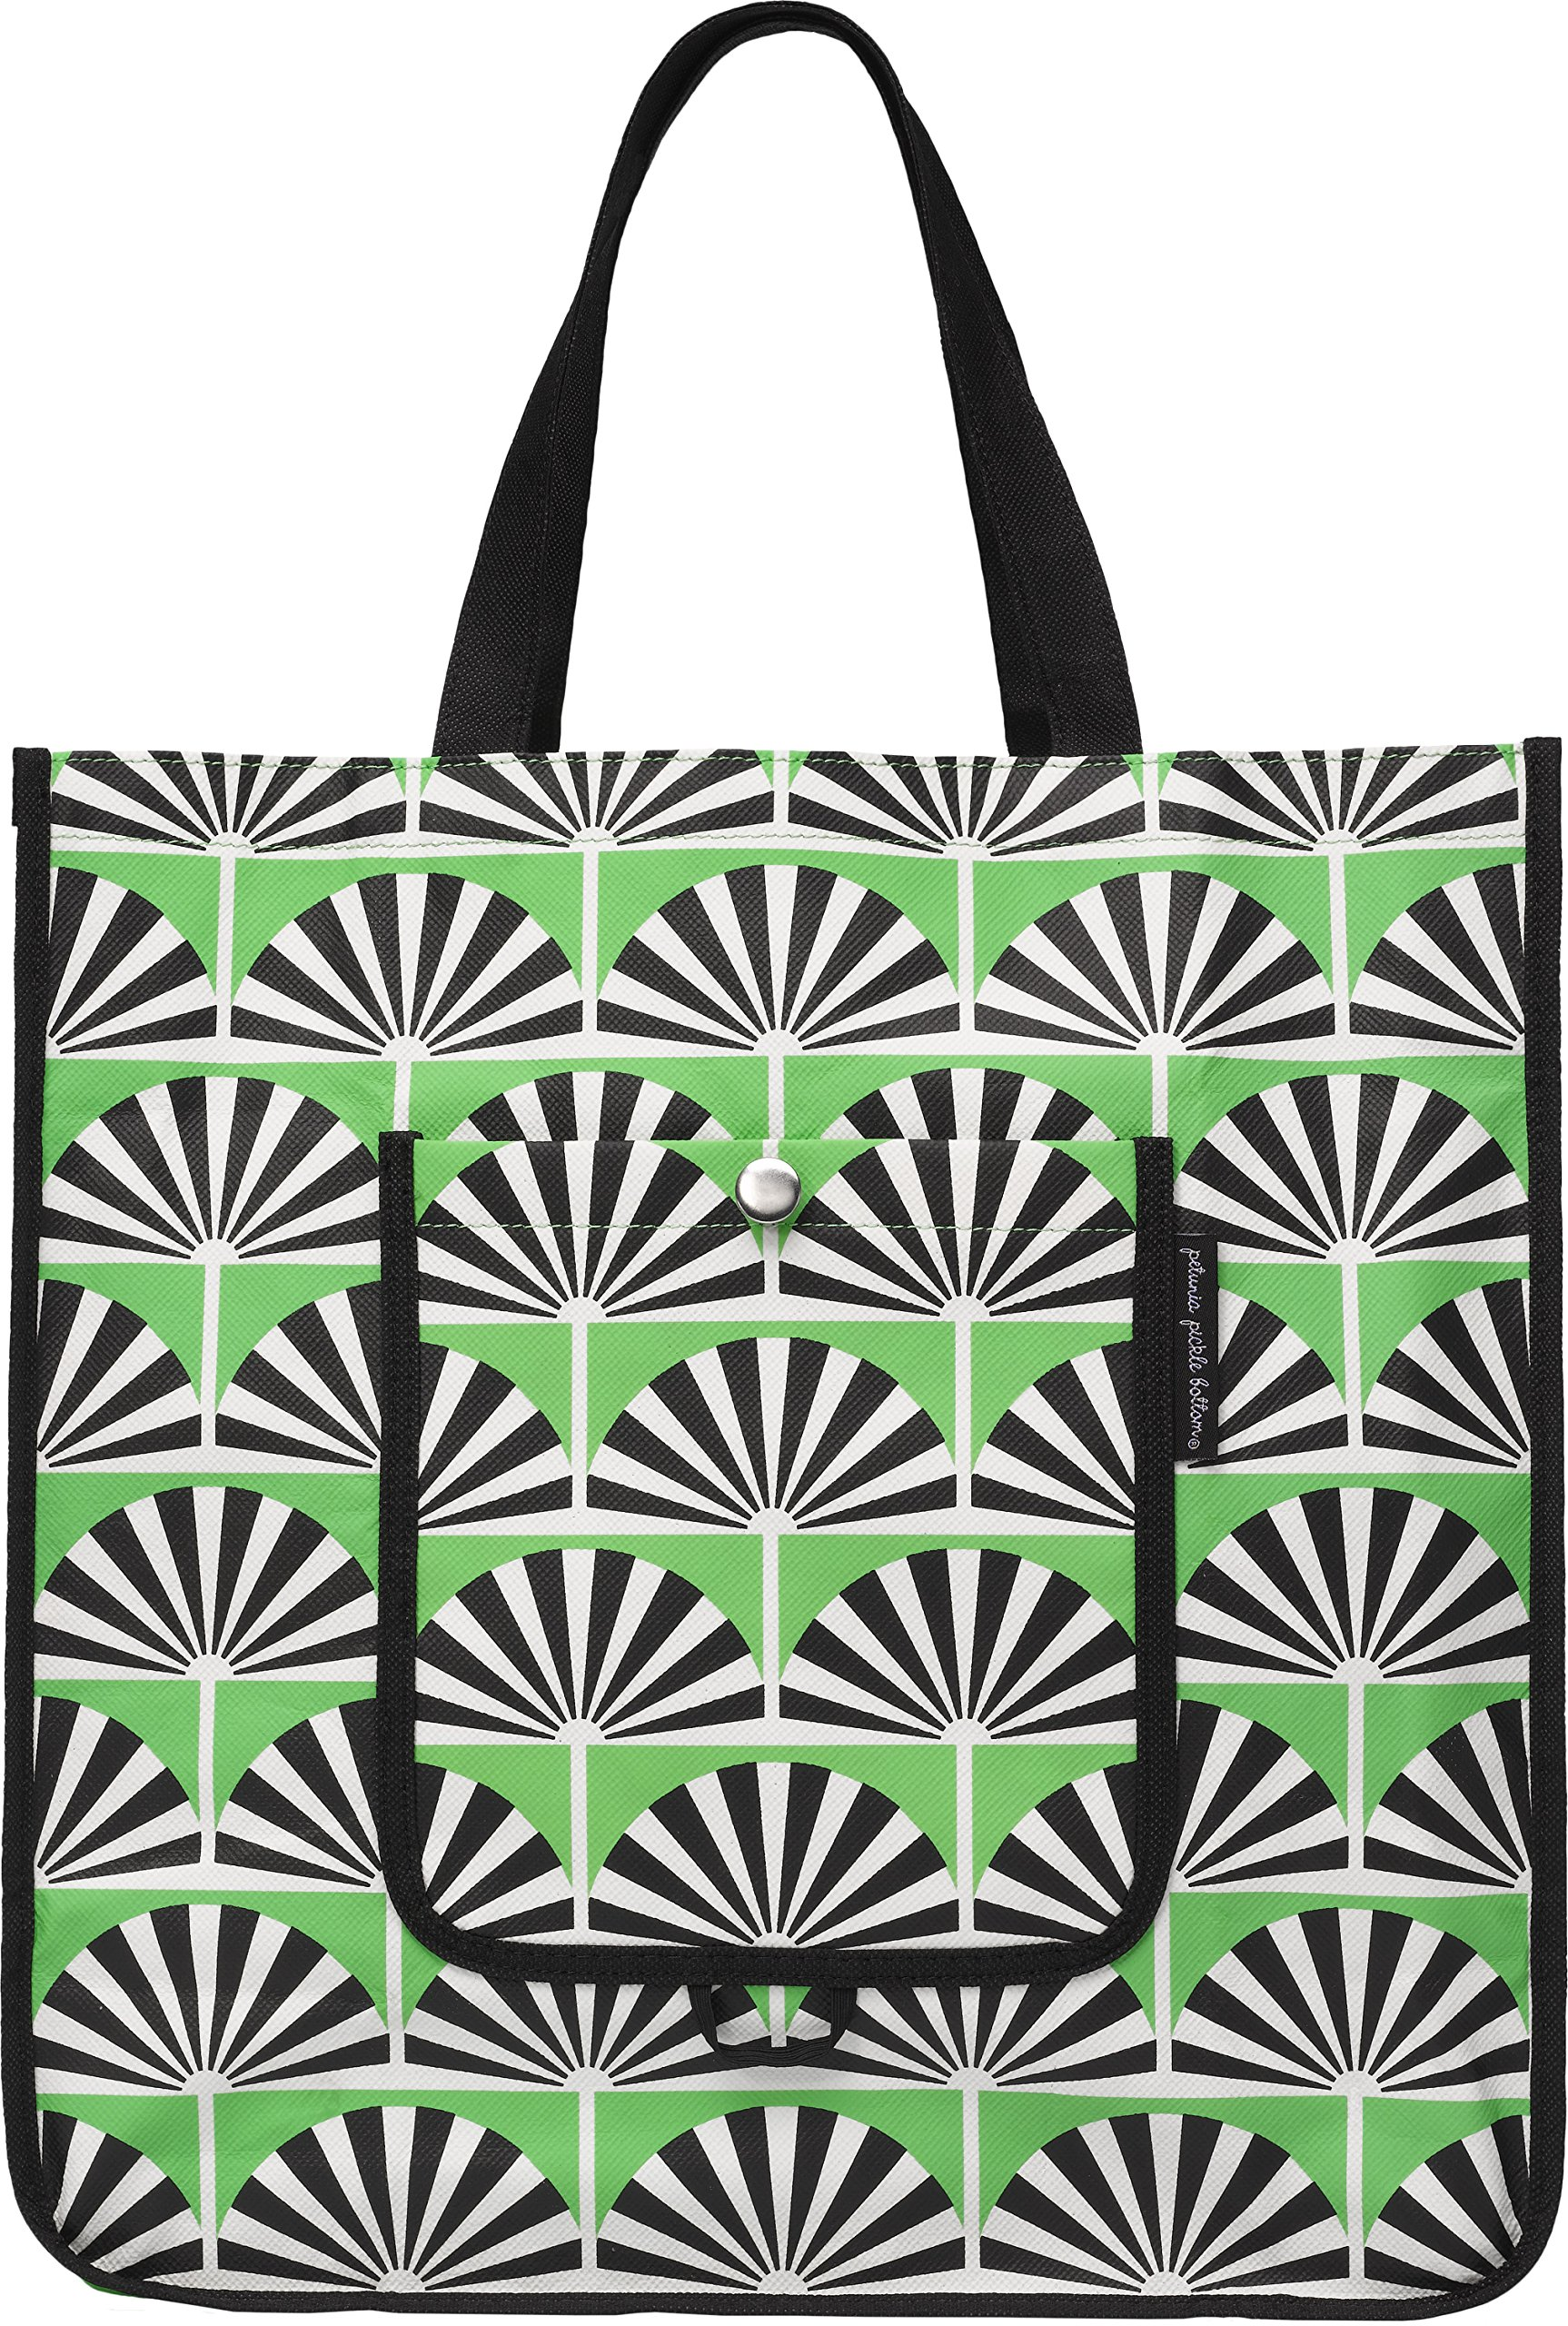 Petunia Pickle Bottom Shopper Tote in Playful Palm Springs, Green by Petunia Pickle Bottom